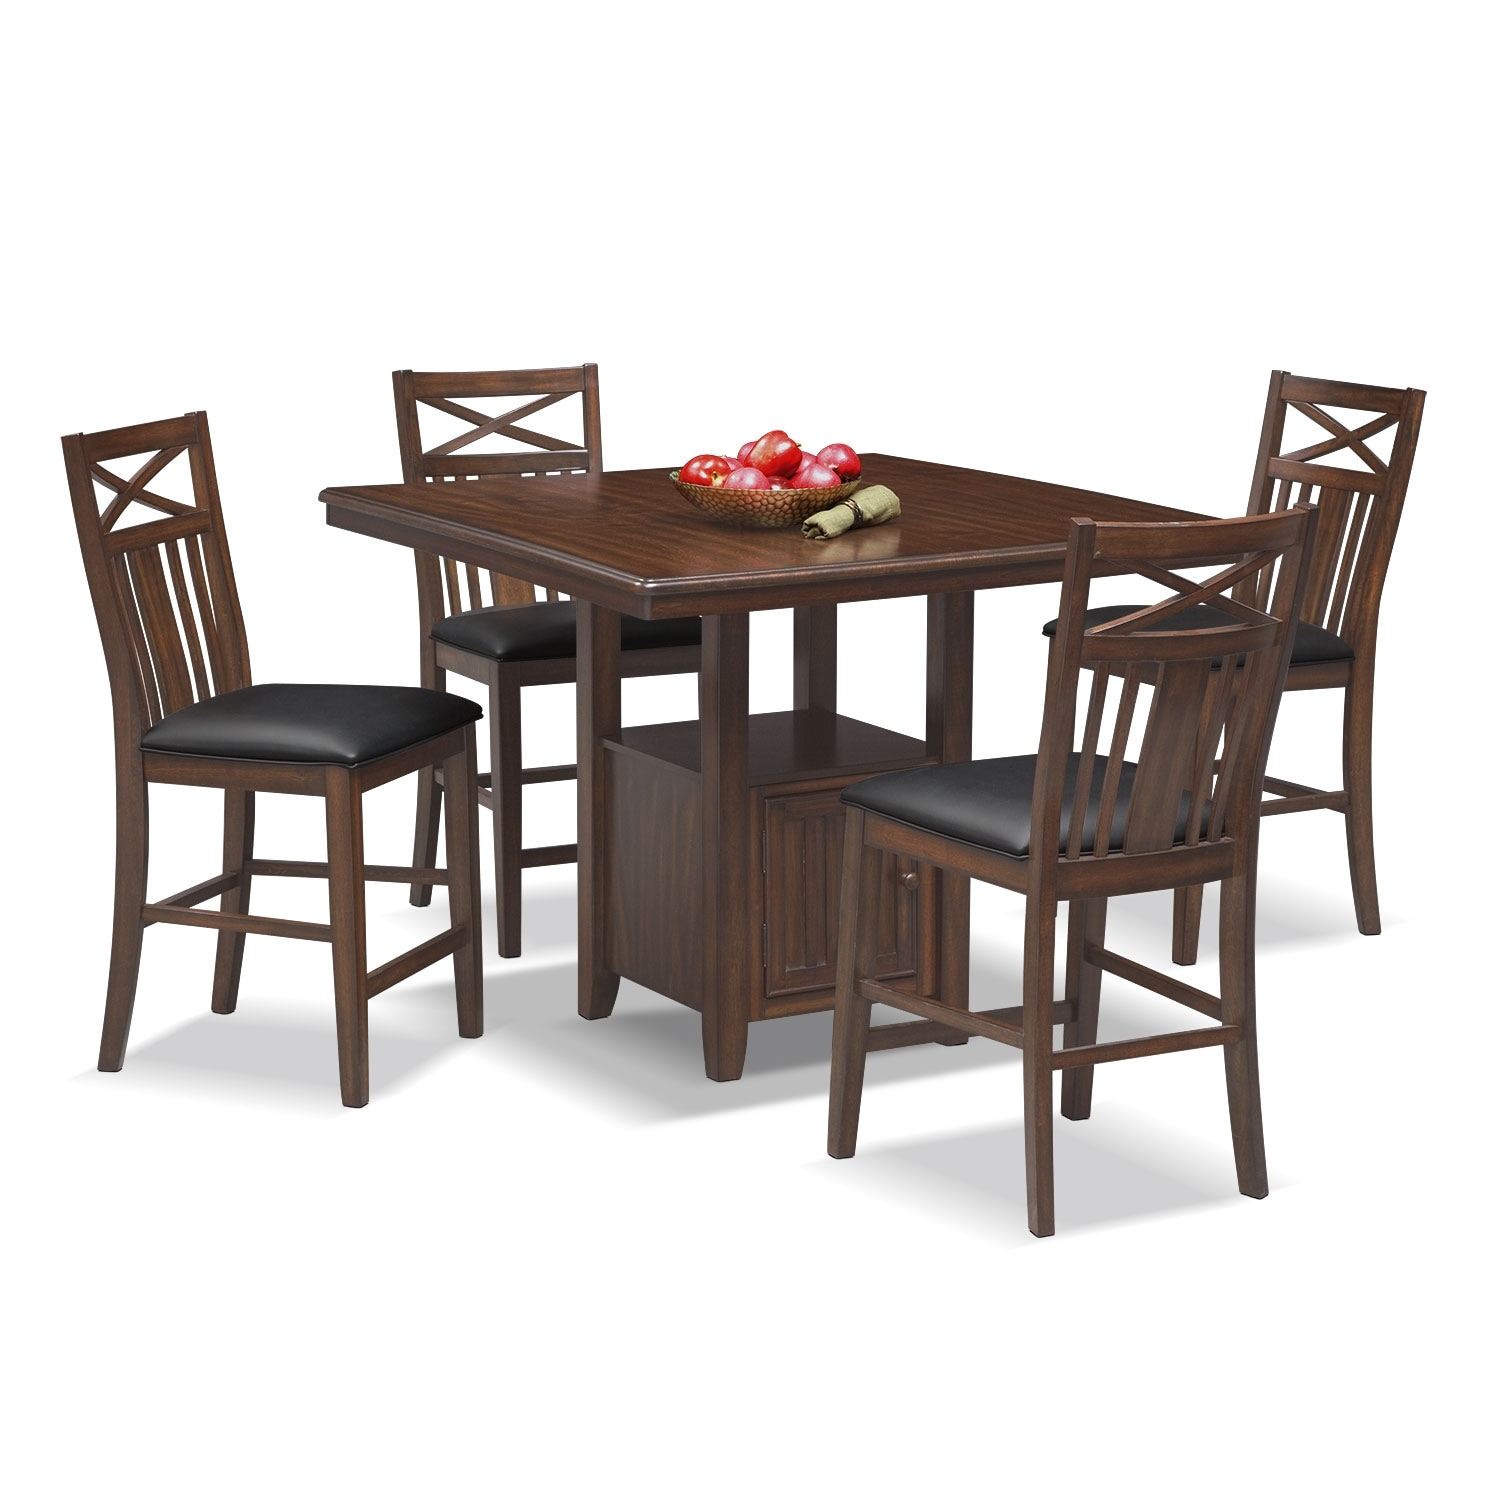 Natchez Trail 5 Pc. Counter-Height Dining Room